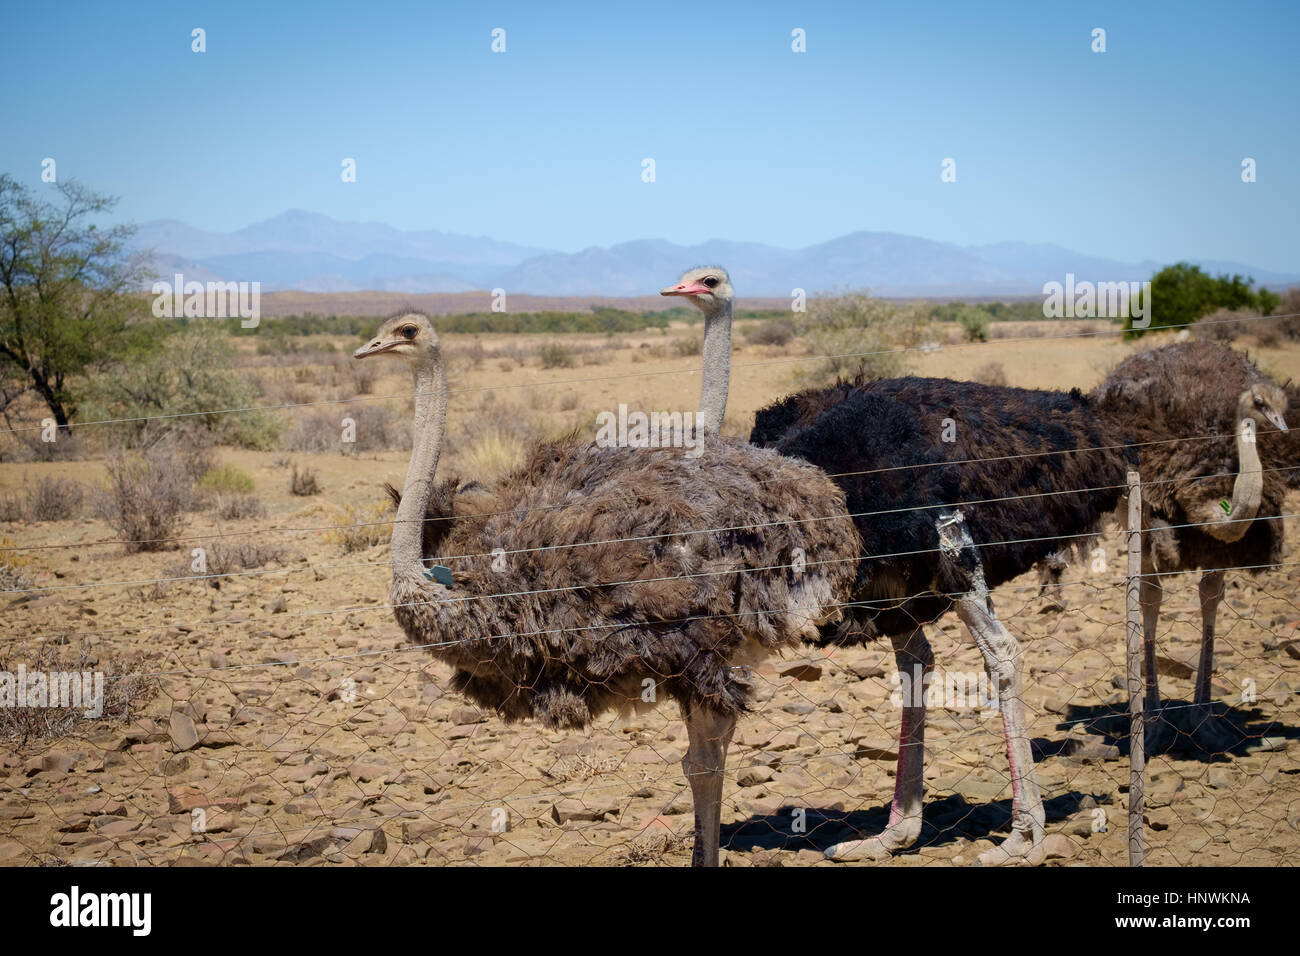 Ostriches in the Little Karoo near Prince Albert - Stock Image